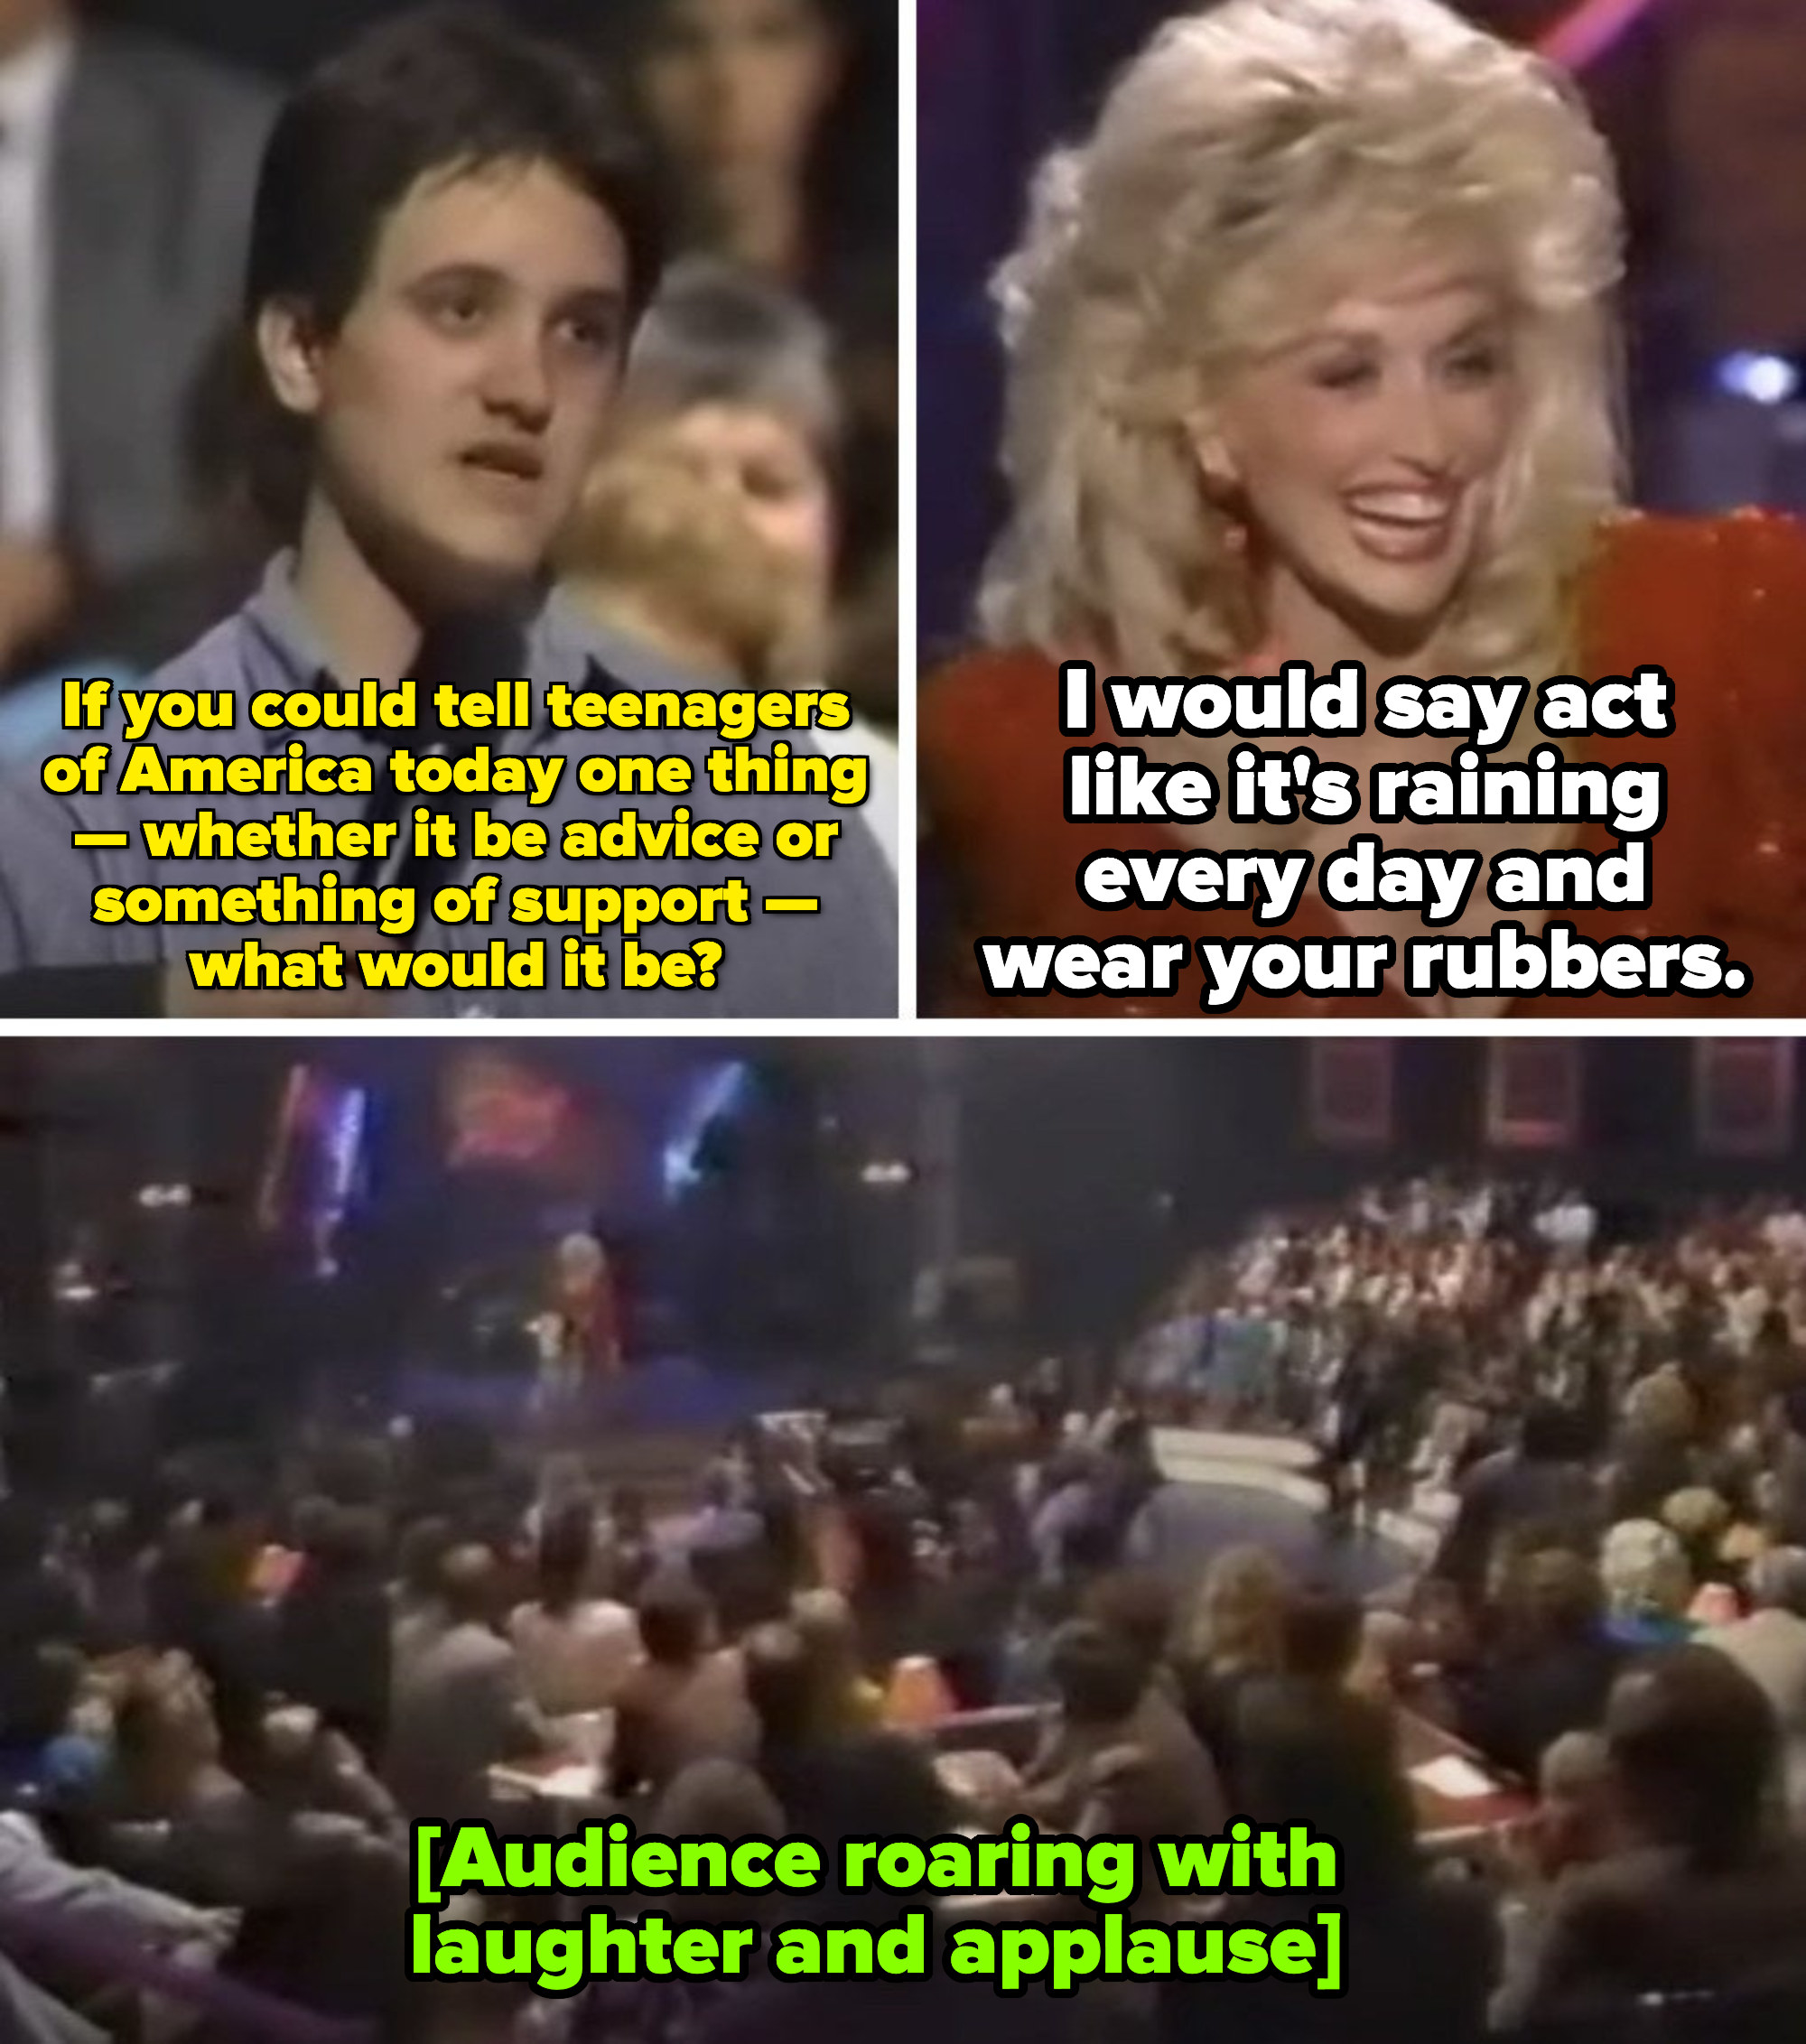 """Teenage fan: """"If you could tell teenagers of America today one thing, what would it be?"""" Dolly: """"I would say act like it's raining and every day wear your rubbers"""""""